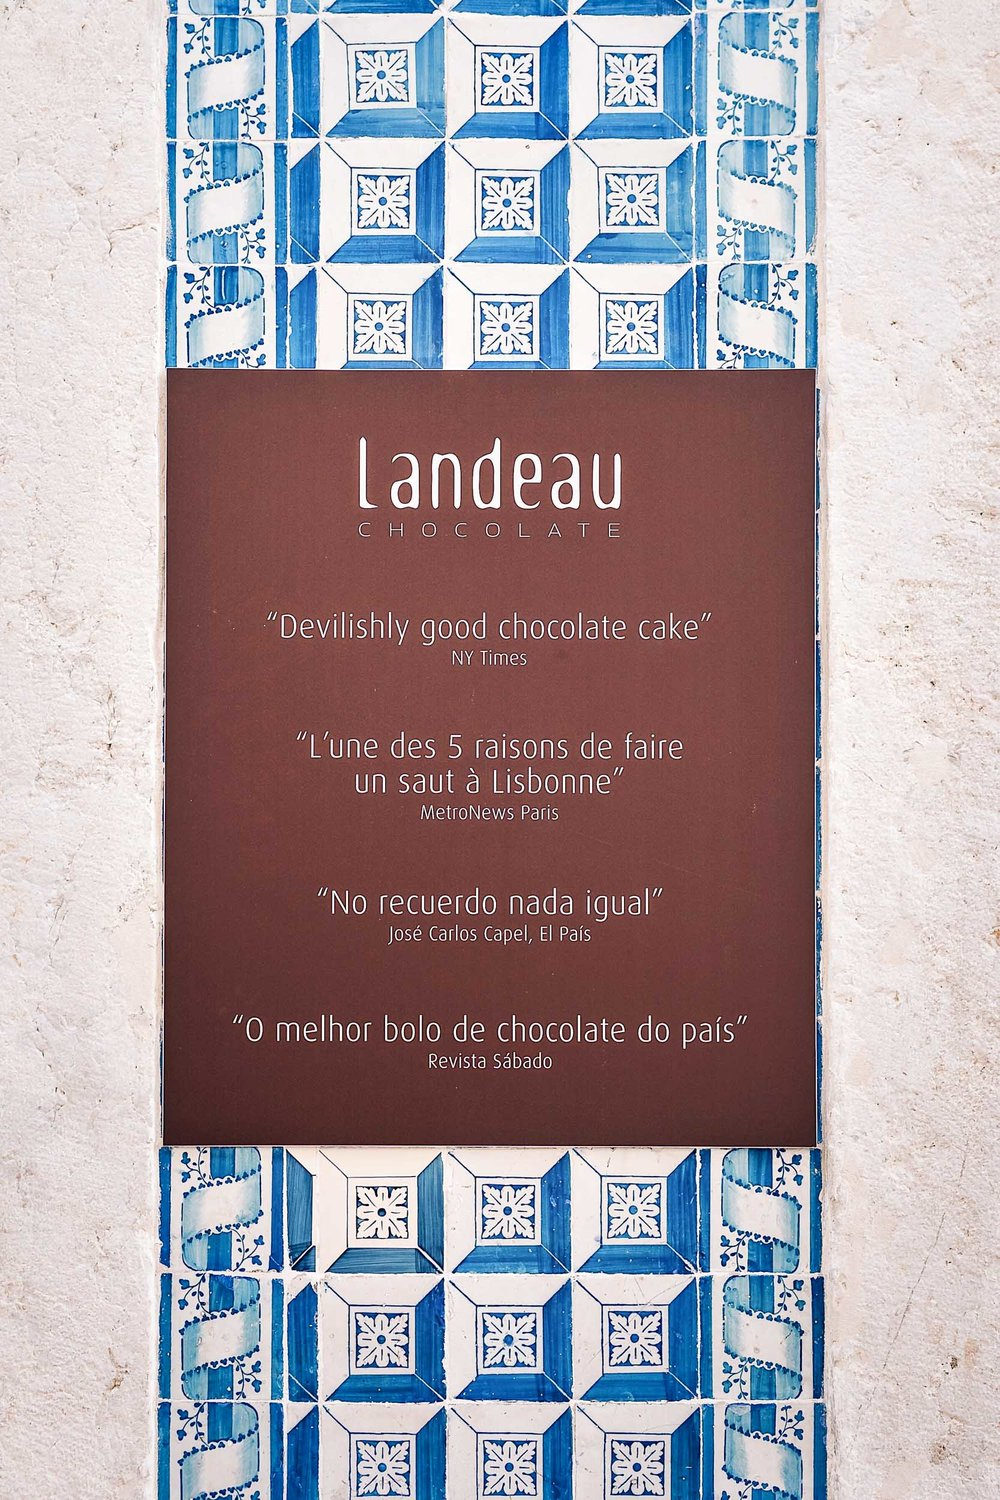 Landeau Chocolate offers two things and two things only - chocolate cake and coffee.